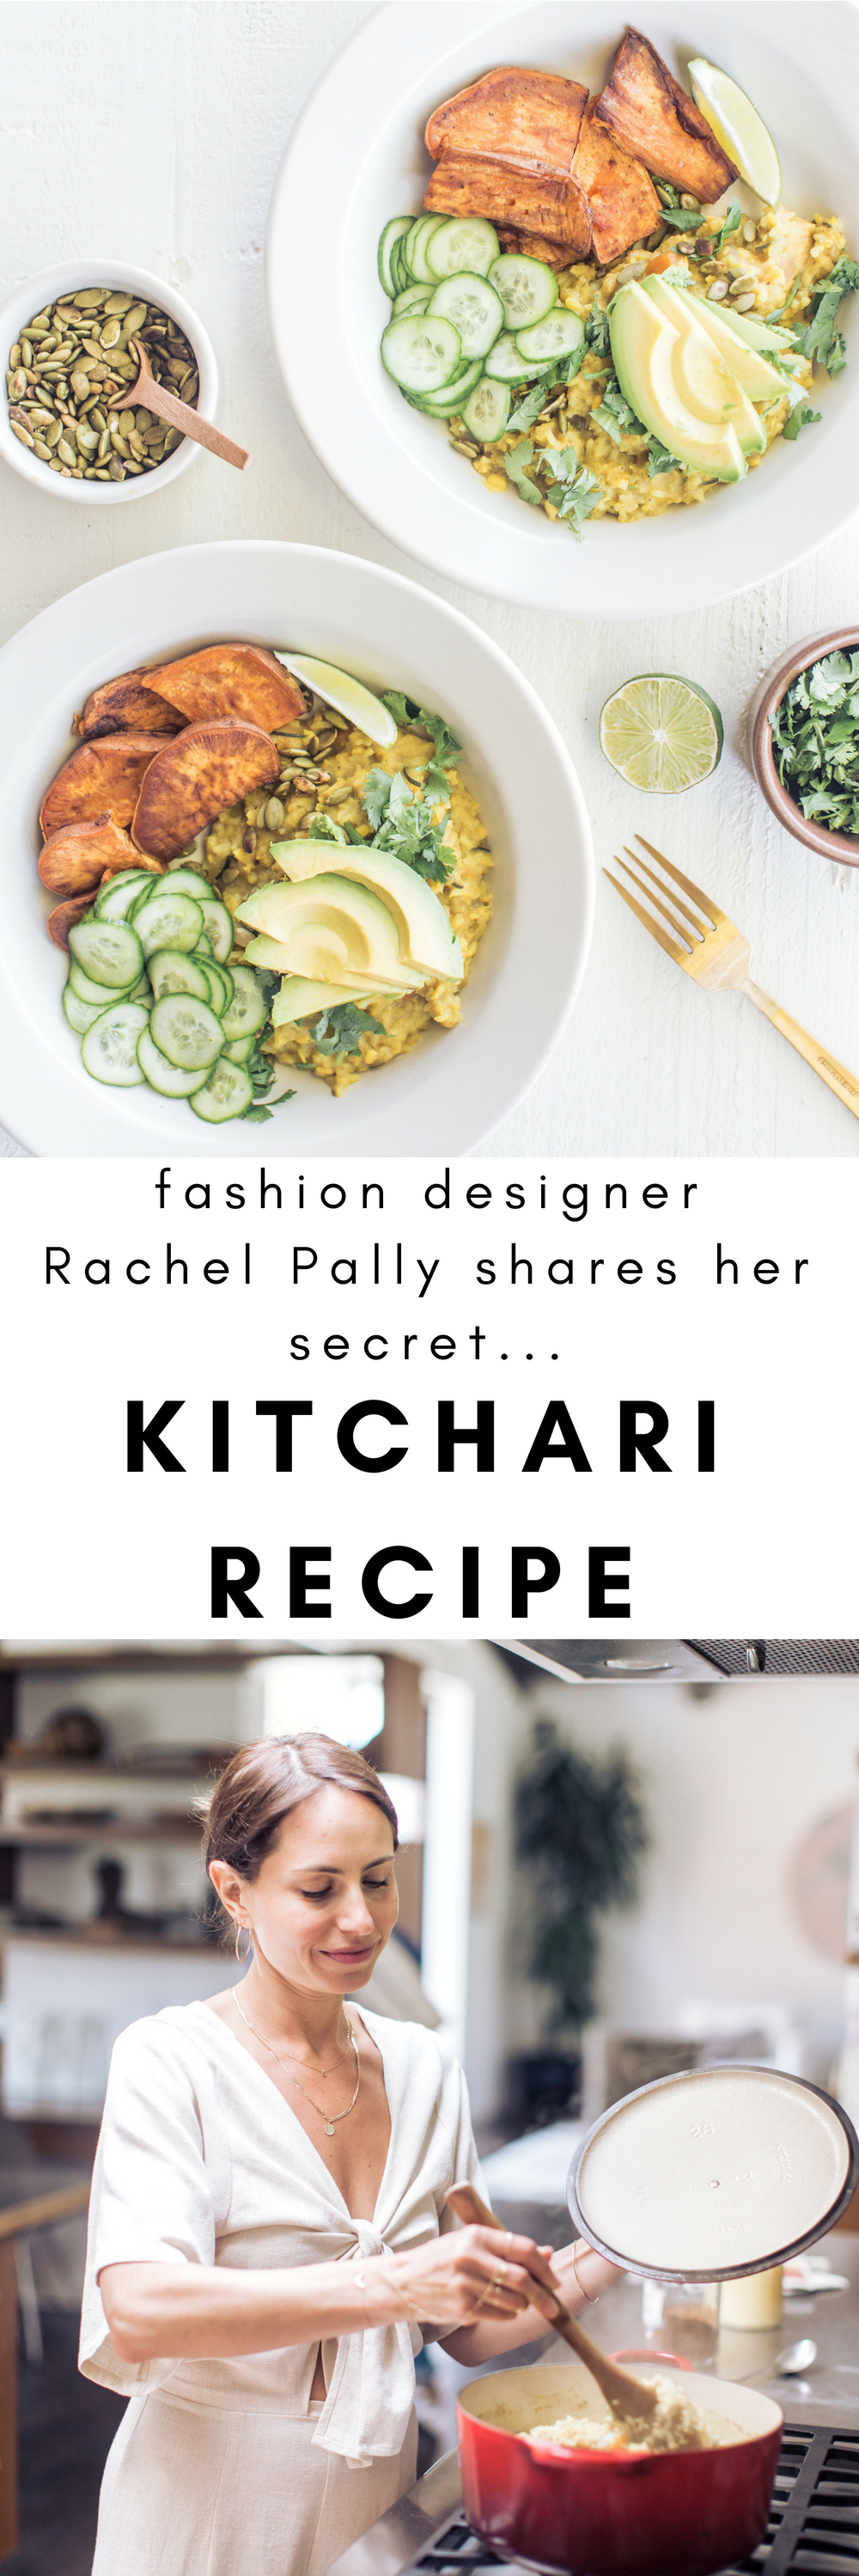 in the kitchen with fashion designer Rachel Pally